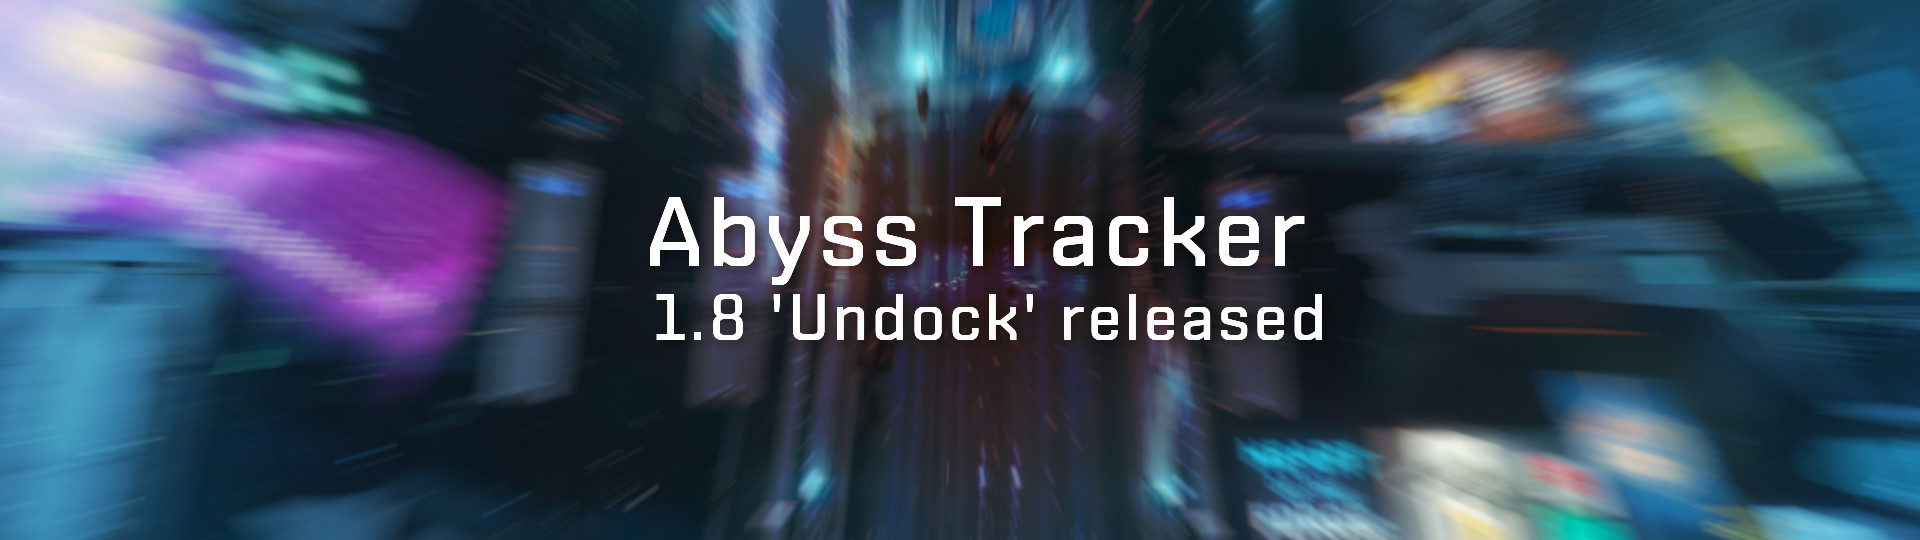 1.8.0 release